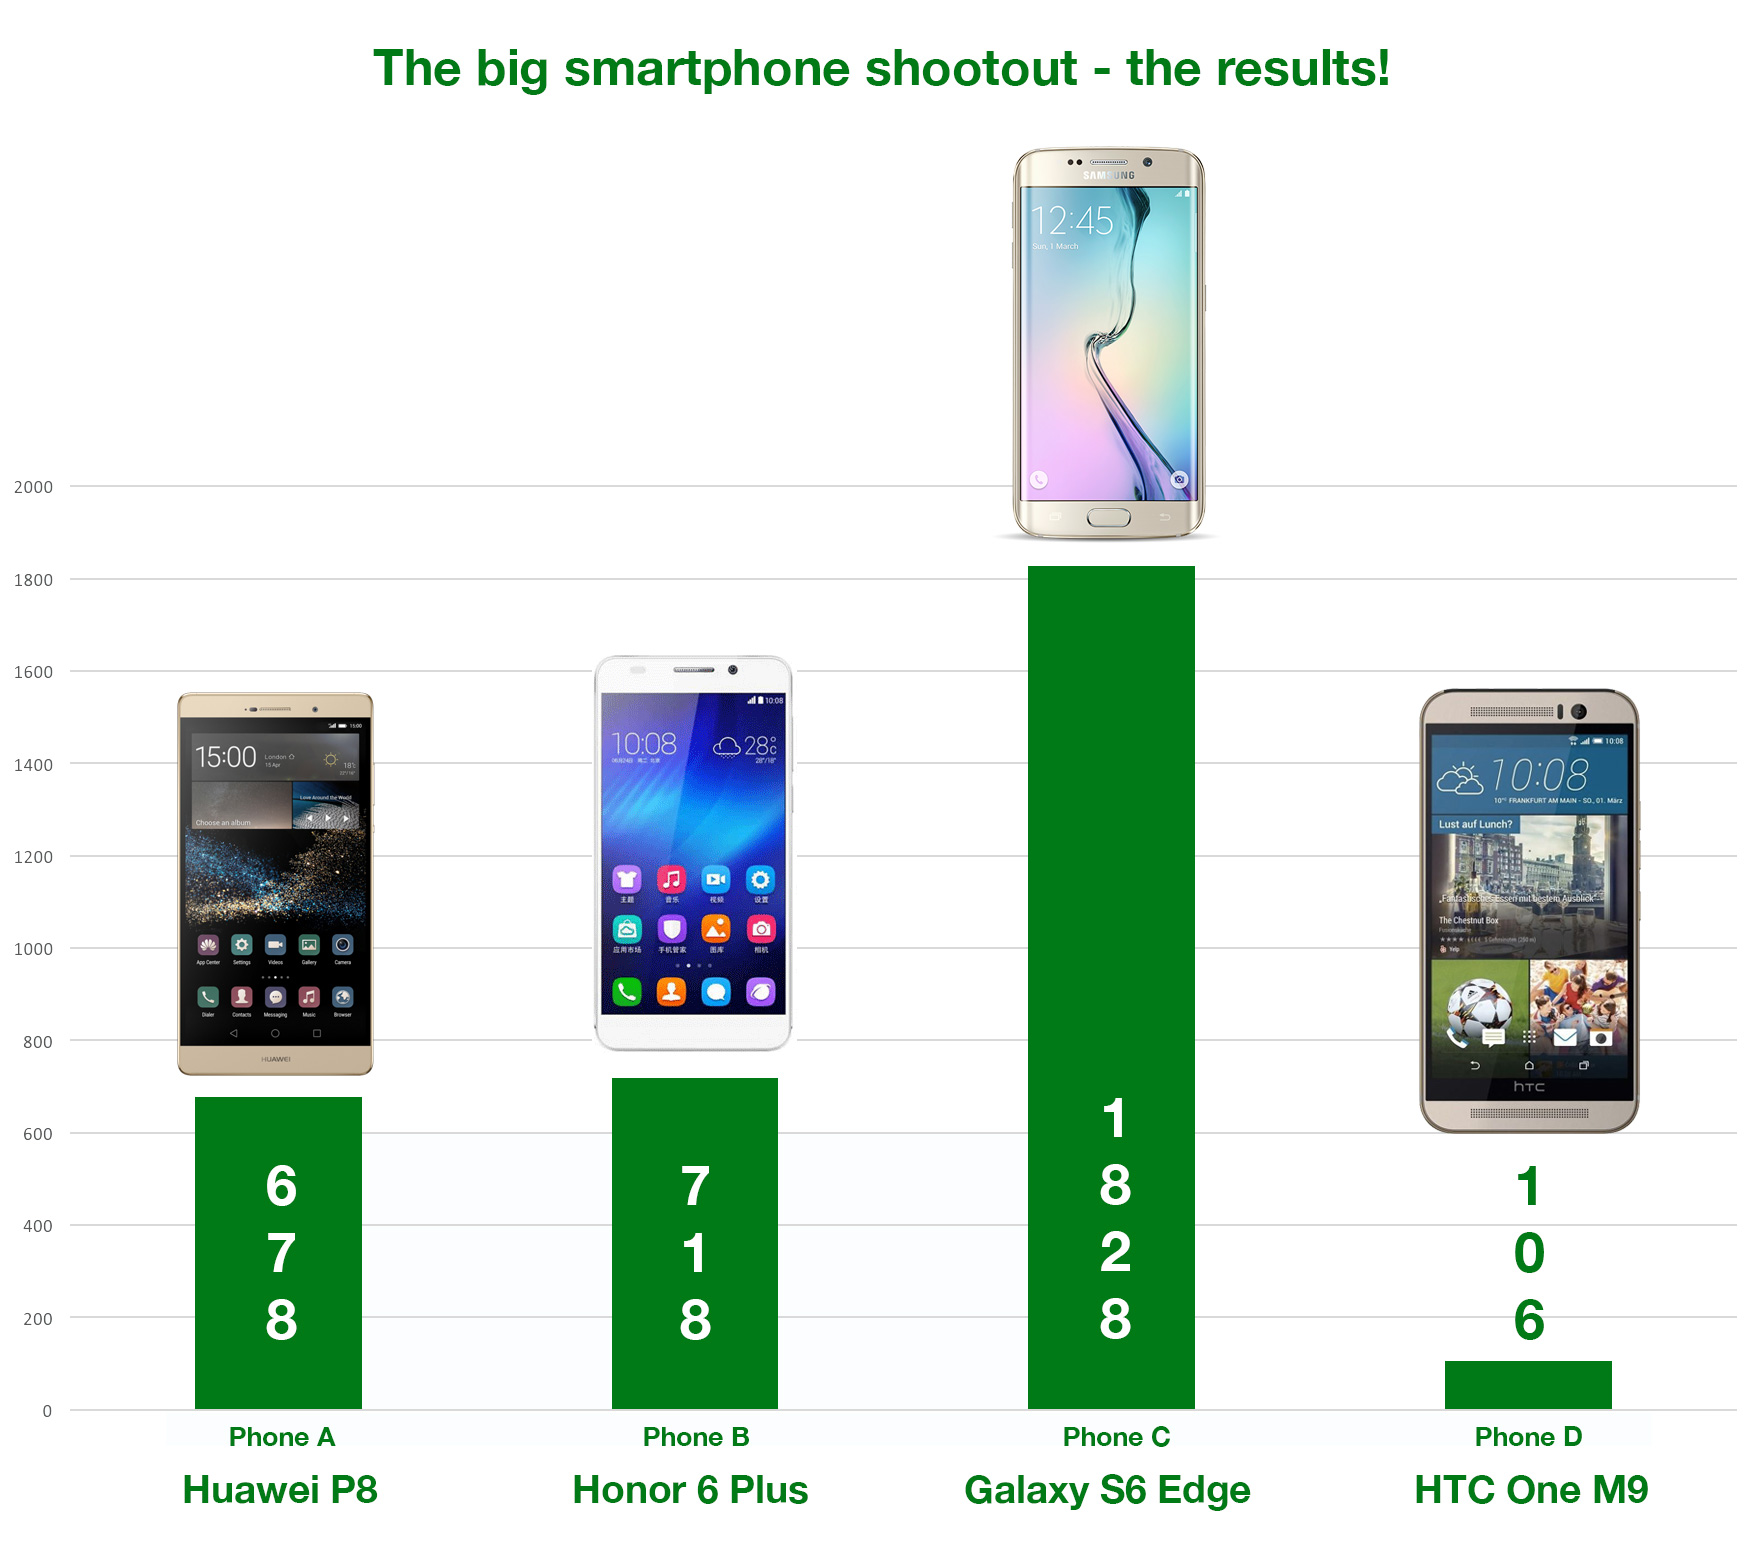 smartphone-shootout-results1